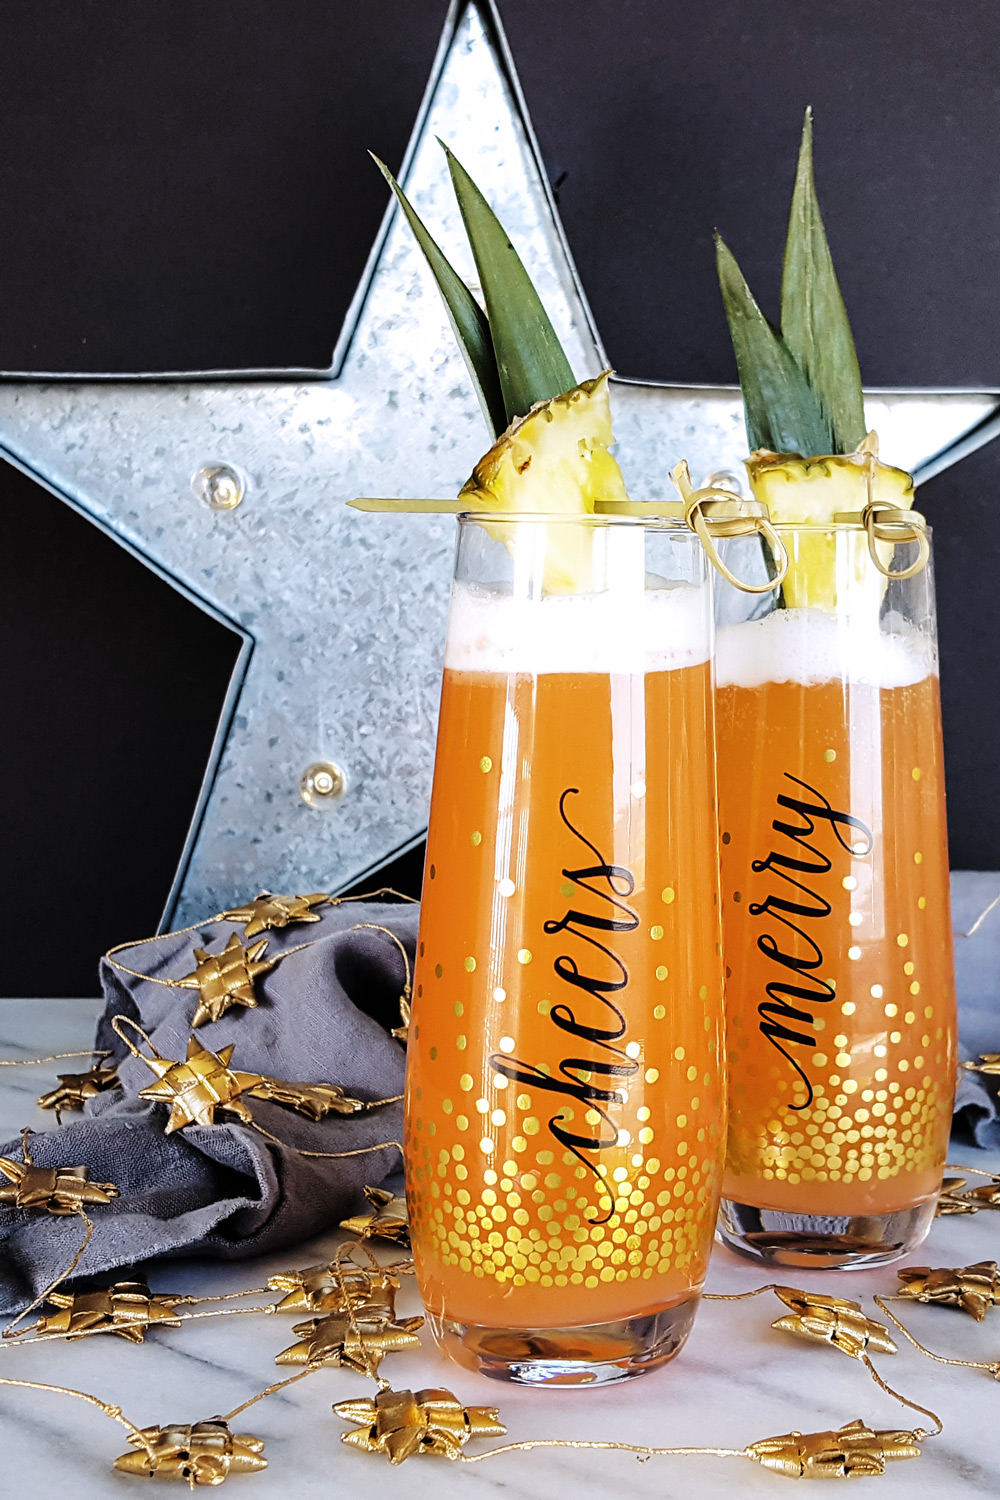 Fizzy, bright, & not too sweet, the Ginger Jungle Bird is a festive sparkling cocktail perfect for celebrating any occasion! Enjoy a touch of the tropics all year long. | FeastInThyme.com